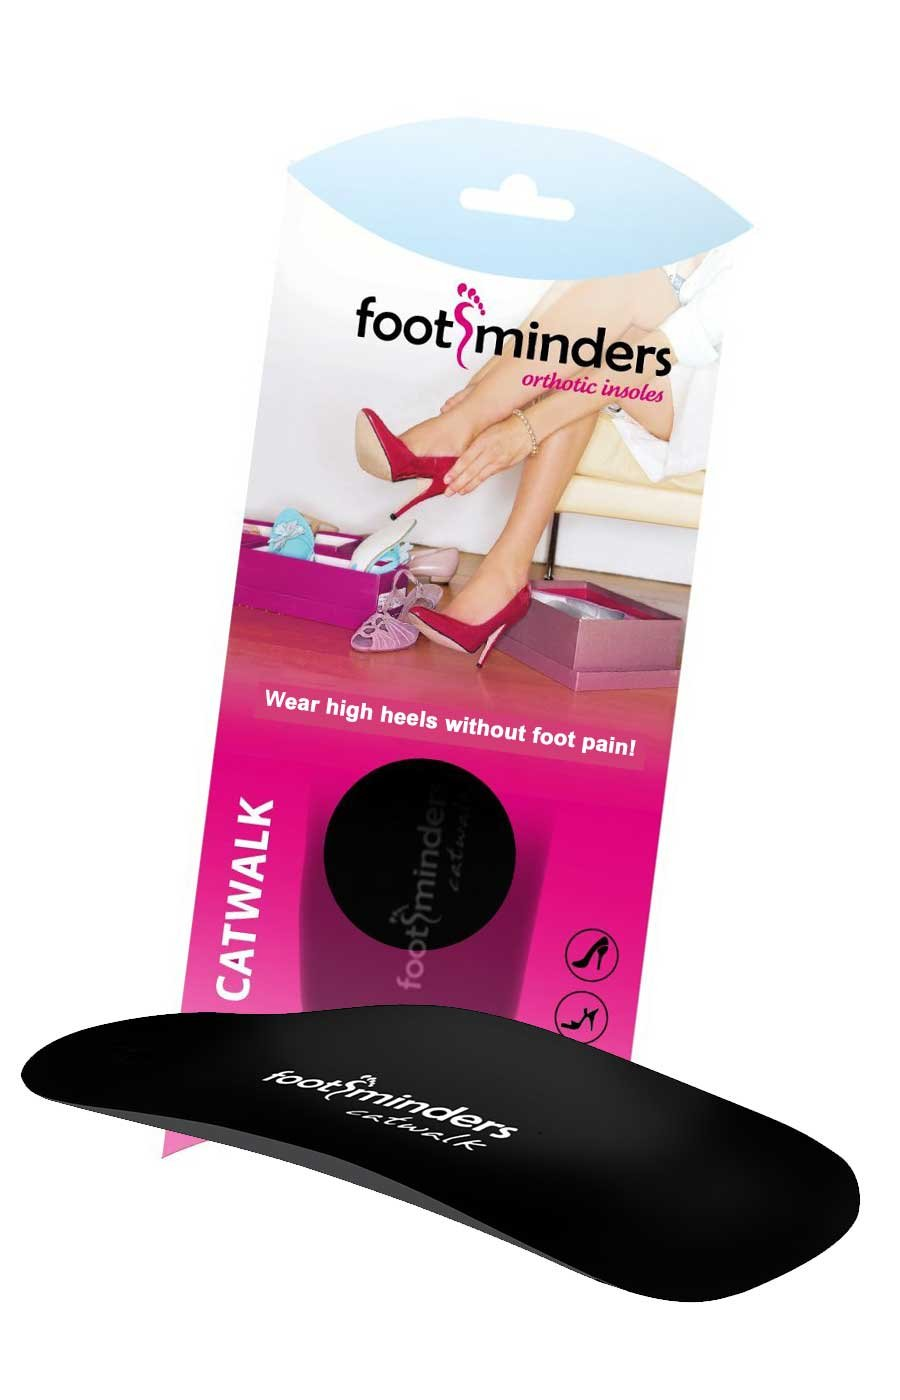 Footminders Catwalk Orthotic Arch Support Insoles for High Heel Shoes, Pumps, Sandals and Boots (Pair) (Small: Women 7-8½) - Relieve Foot Pain Due to Wearing High Heels by Footminders